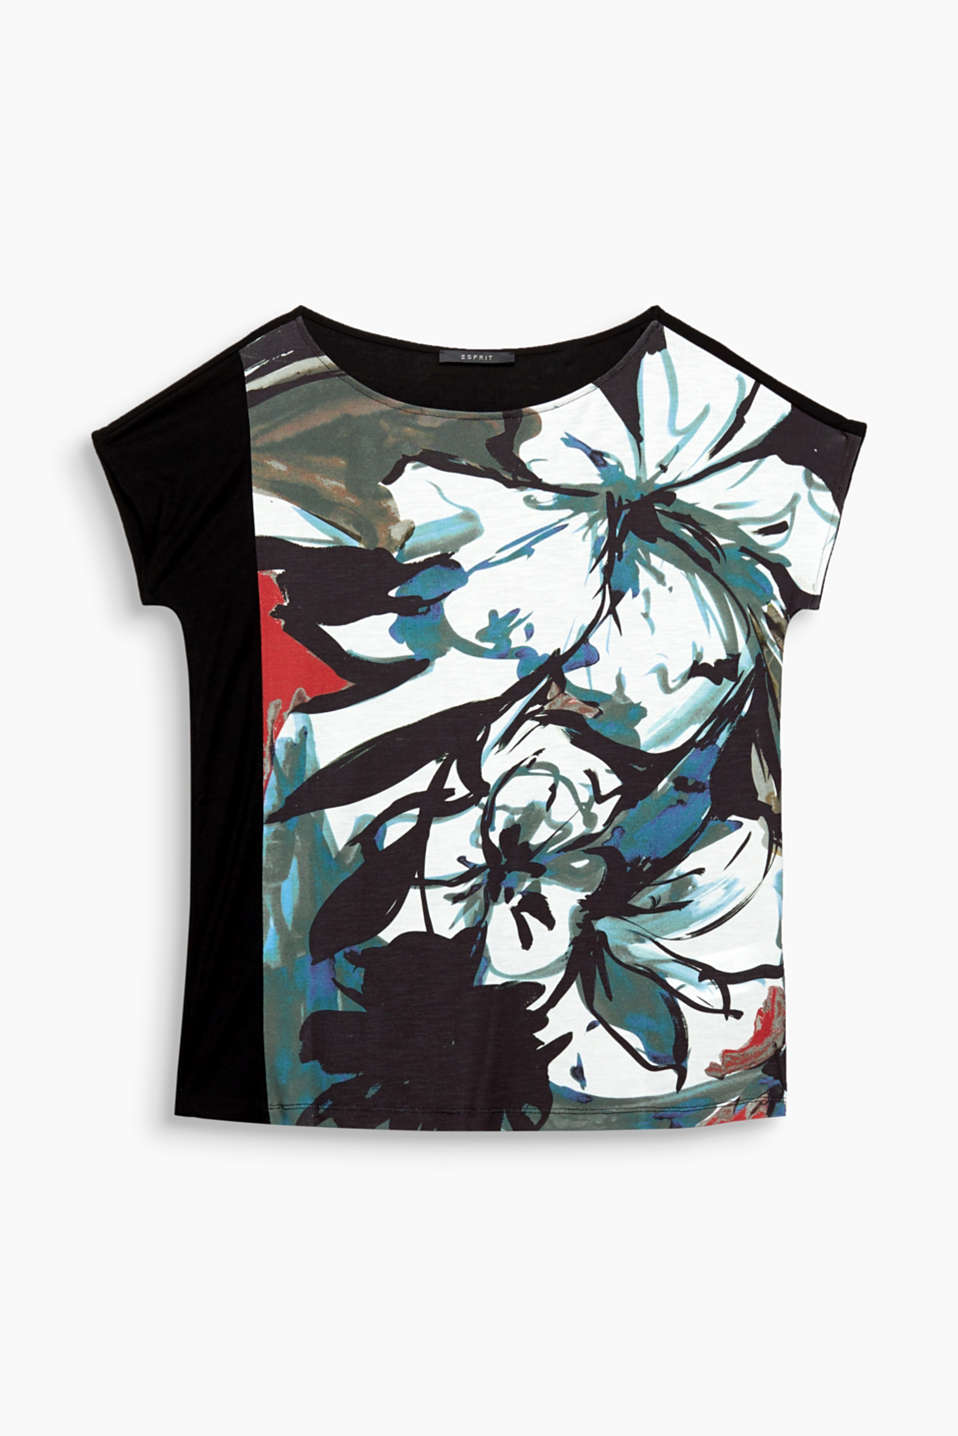 Flower power: The distinctive floral print on the piqué front section gives this loose-fitting top a modern feel!